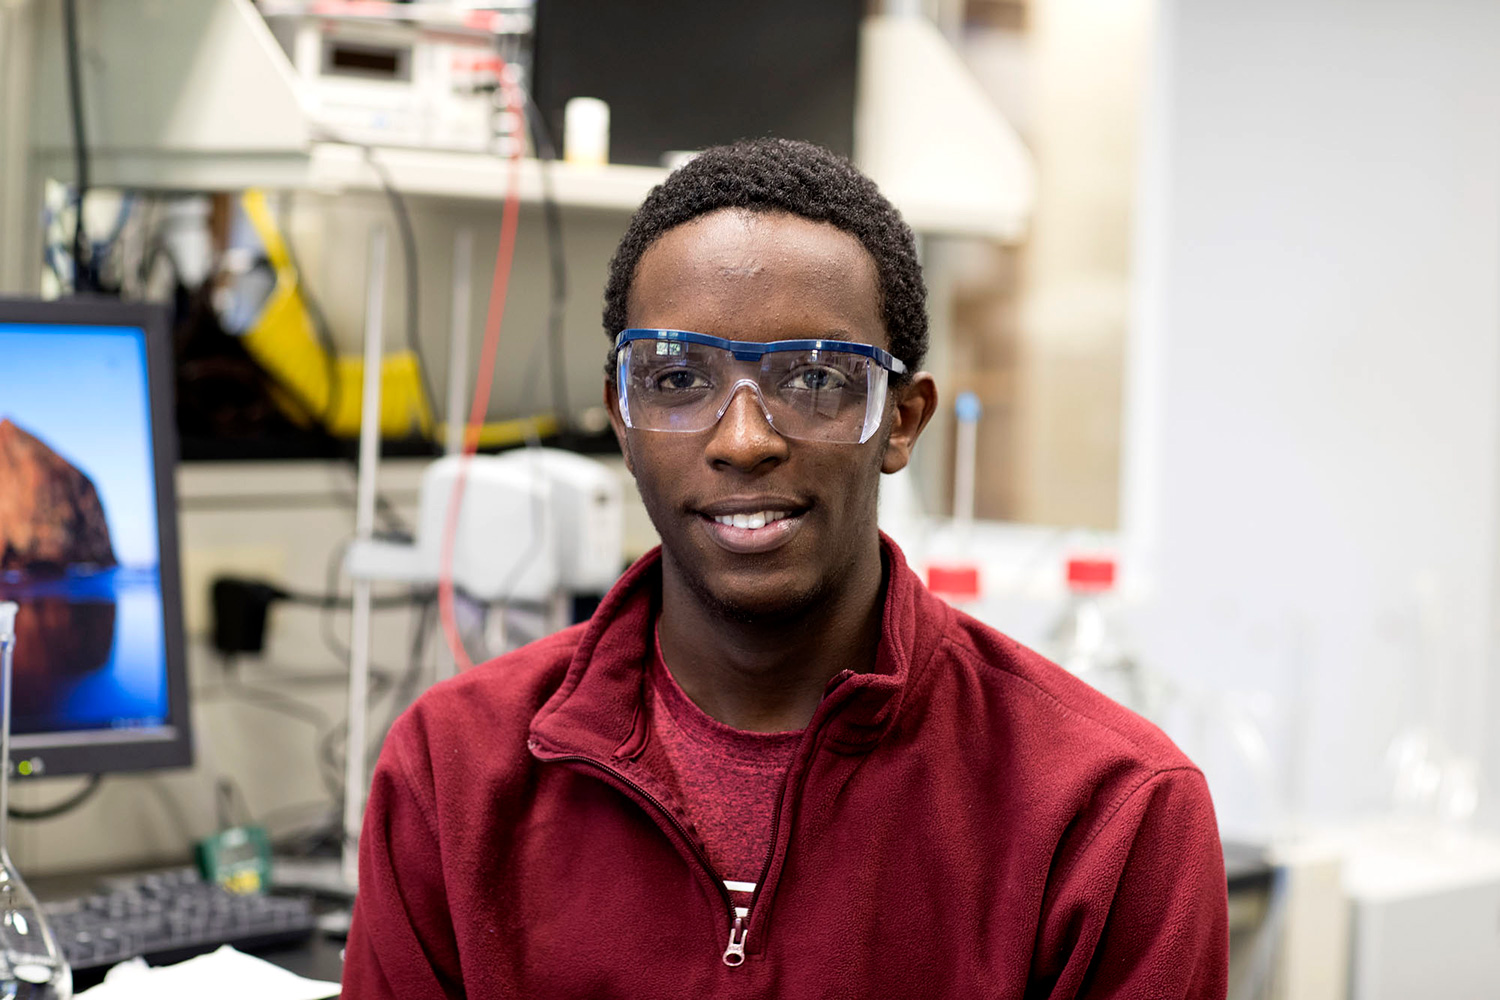 First-year student Kevin Bahati is a member of the National Society of Black Engineers and plans to major in chemical engineering. (Photo by Dan Addison, University Communications)